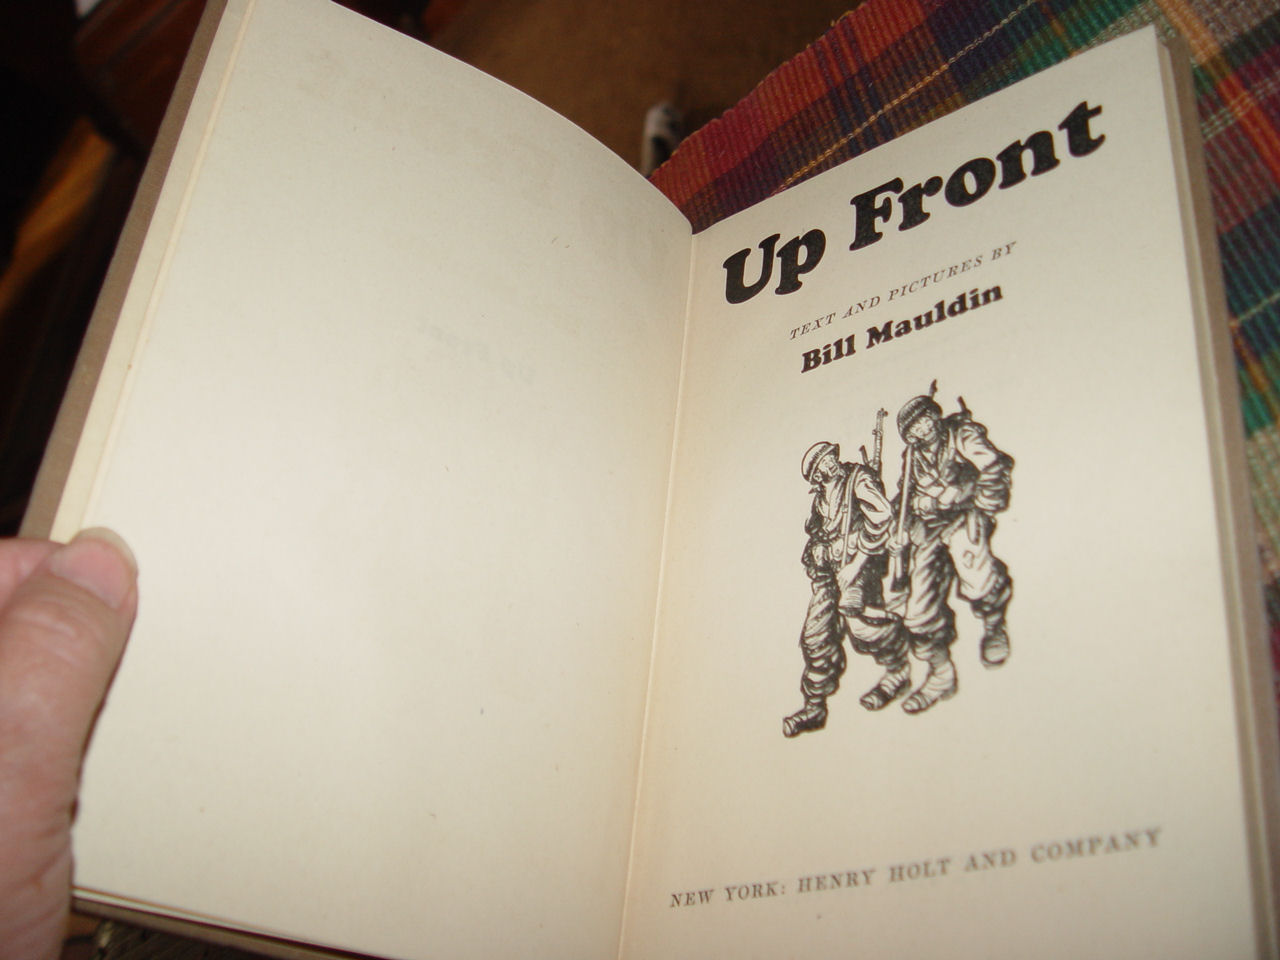 Up Front, Bill                                                 Mauldin Author,                                                 Illustrator; Published                                                 by Henry Holt & Co,                                                 New York, NY 1945